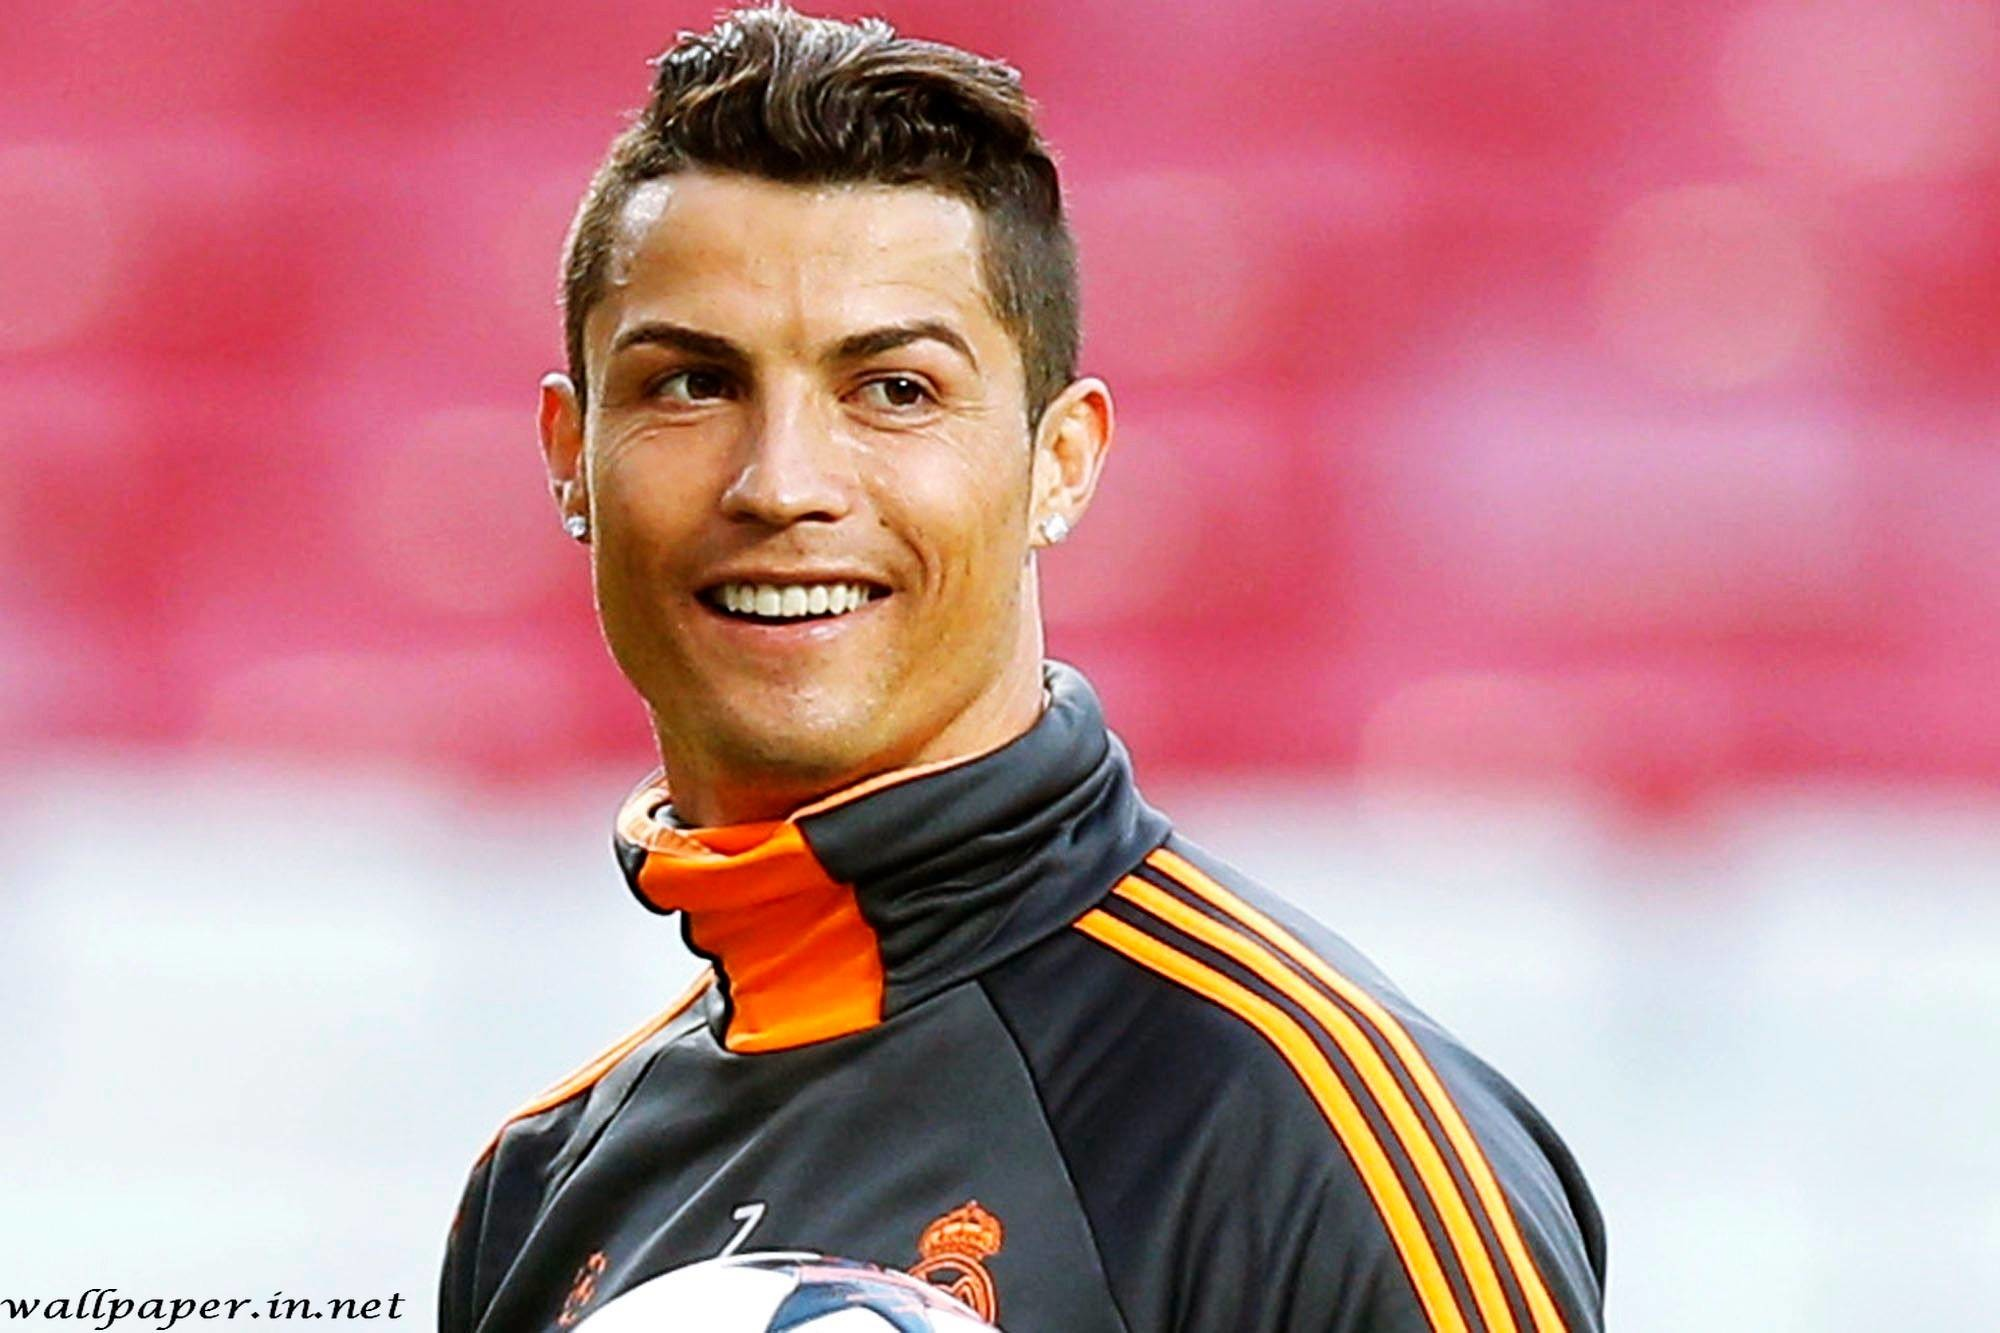 Cr7 hd wallpaper 2018 72 images - Download cr7 photos ...